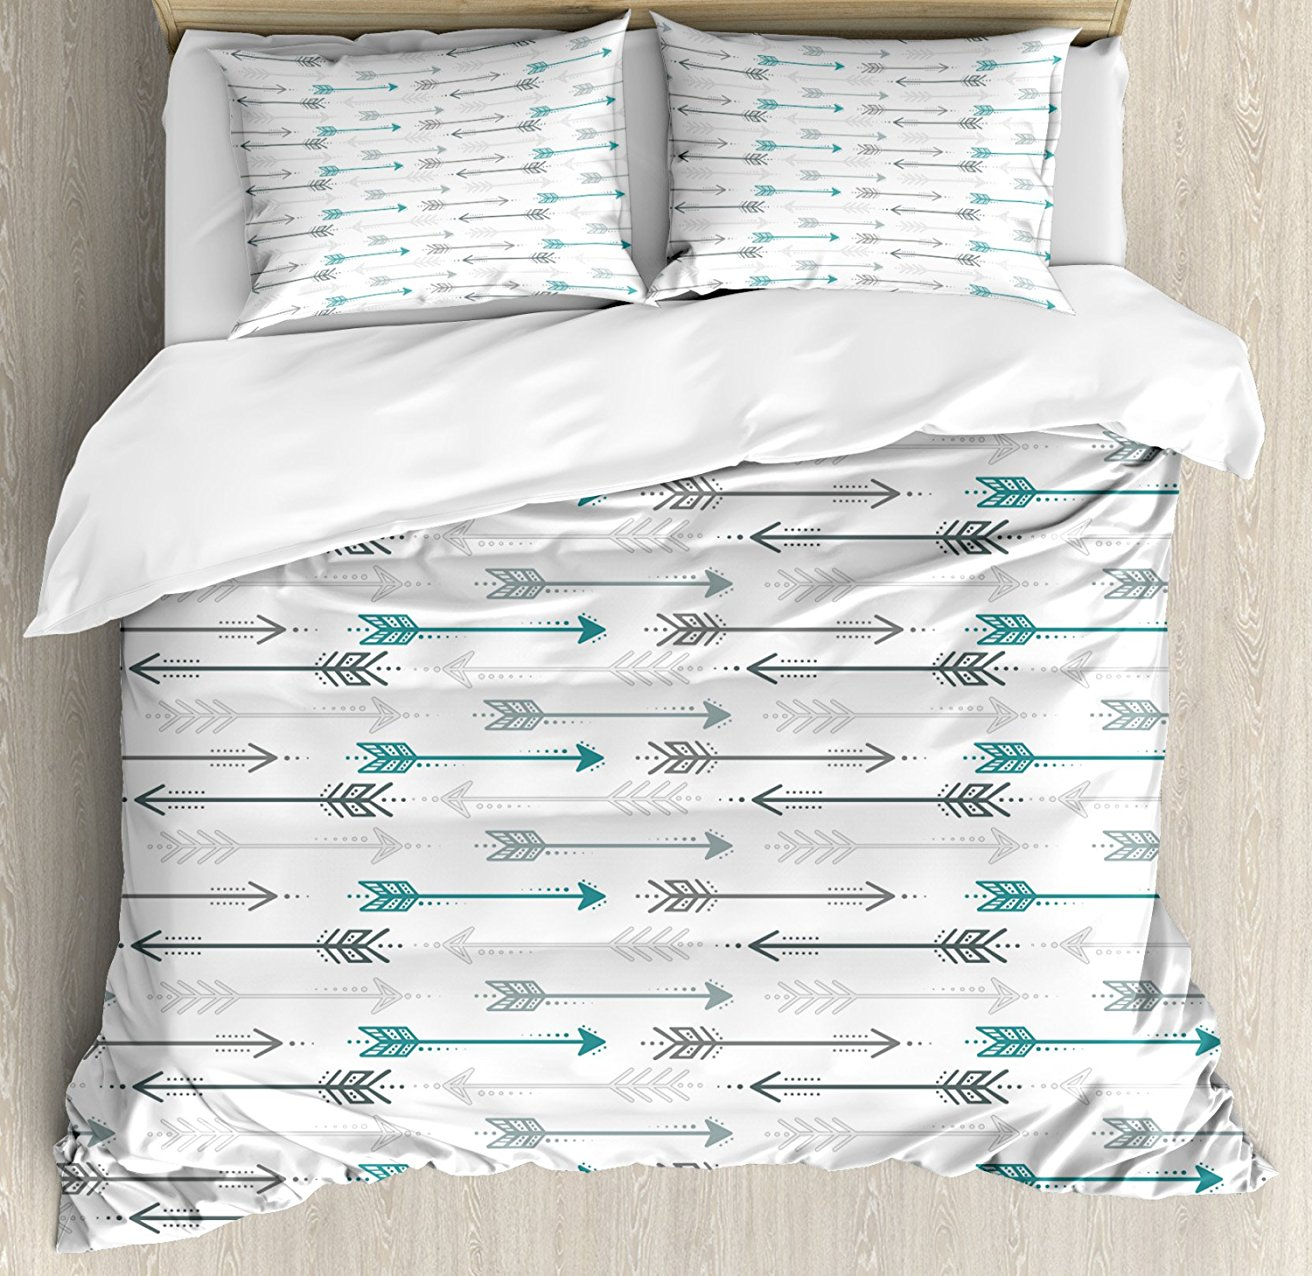 Teal Decor Duvet Cover Set Retro Arrow Pattern In Horizontal Line Heading To Opposite Directions Artwork 4 Piece Bedding Set